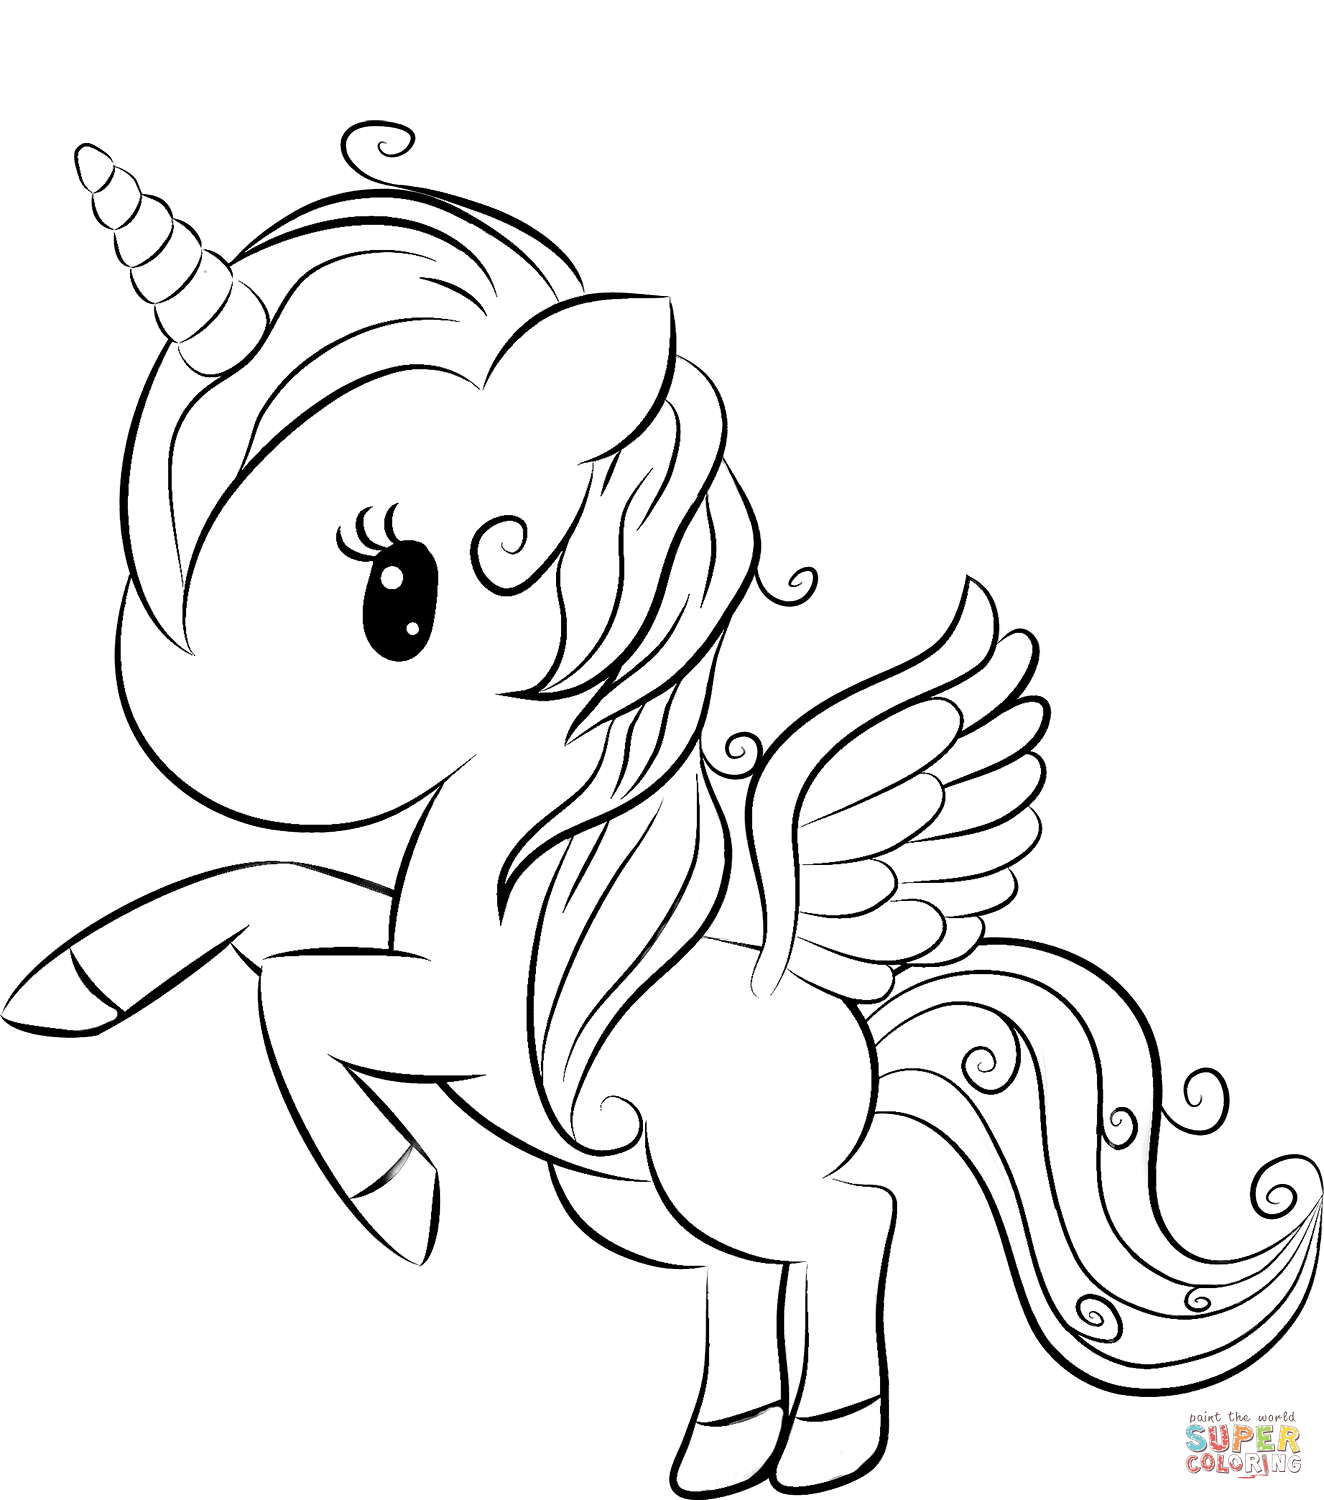 free coloring sheets unicorn coloring pages unicorn coloring pages free and printable sheets free coloring unicorn